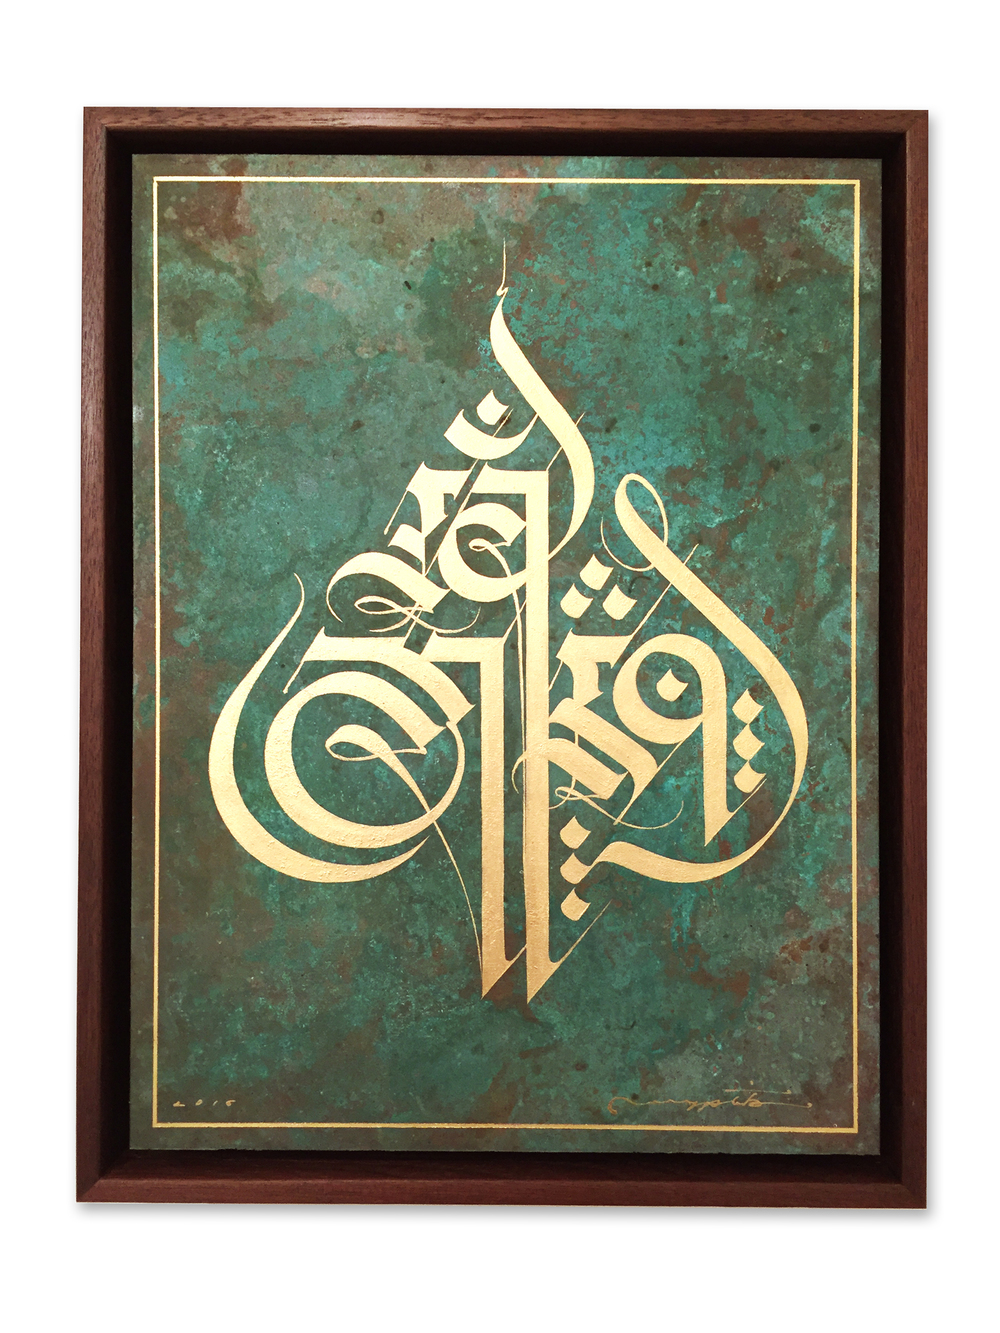 Cryptik 'Aum Bodhi'(2015) 9 x 12 x 2.25 Inches Acrylic on Copper Patina Sheet, Framed SOLD